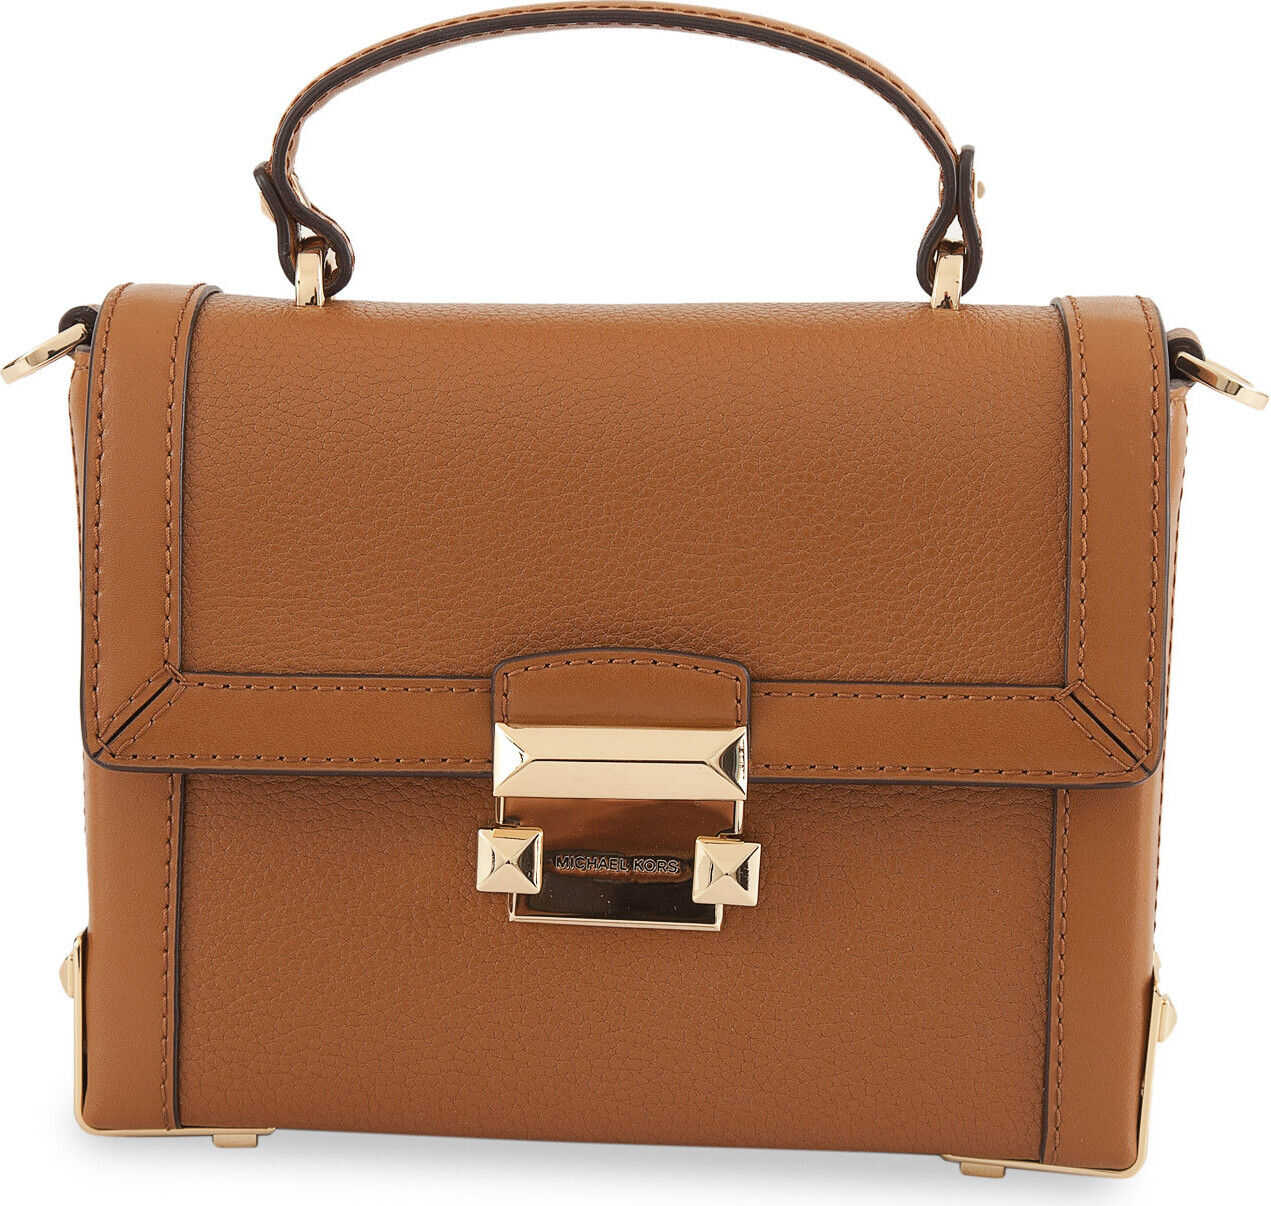 Michael Kors 249EE2A9 LEATHER